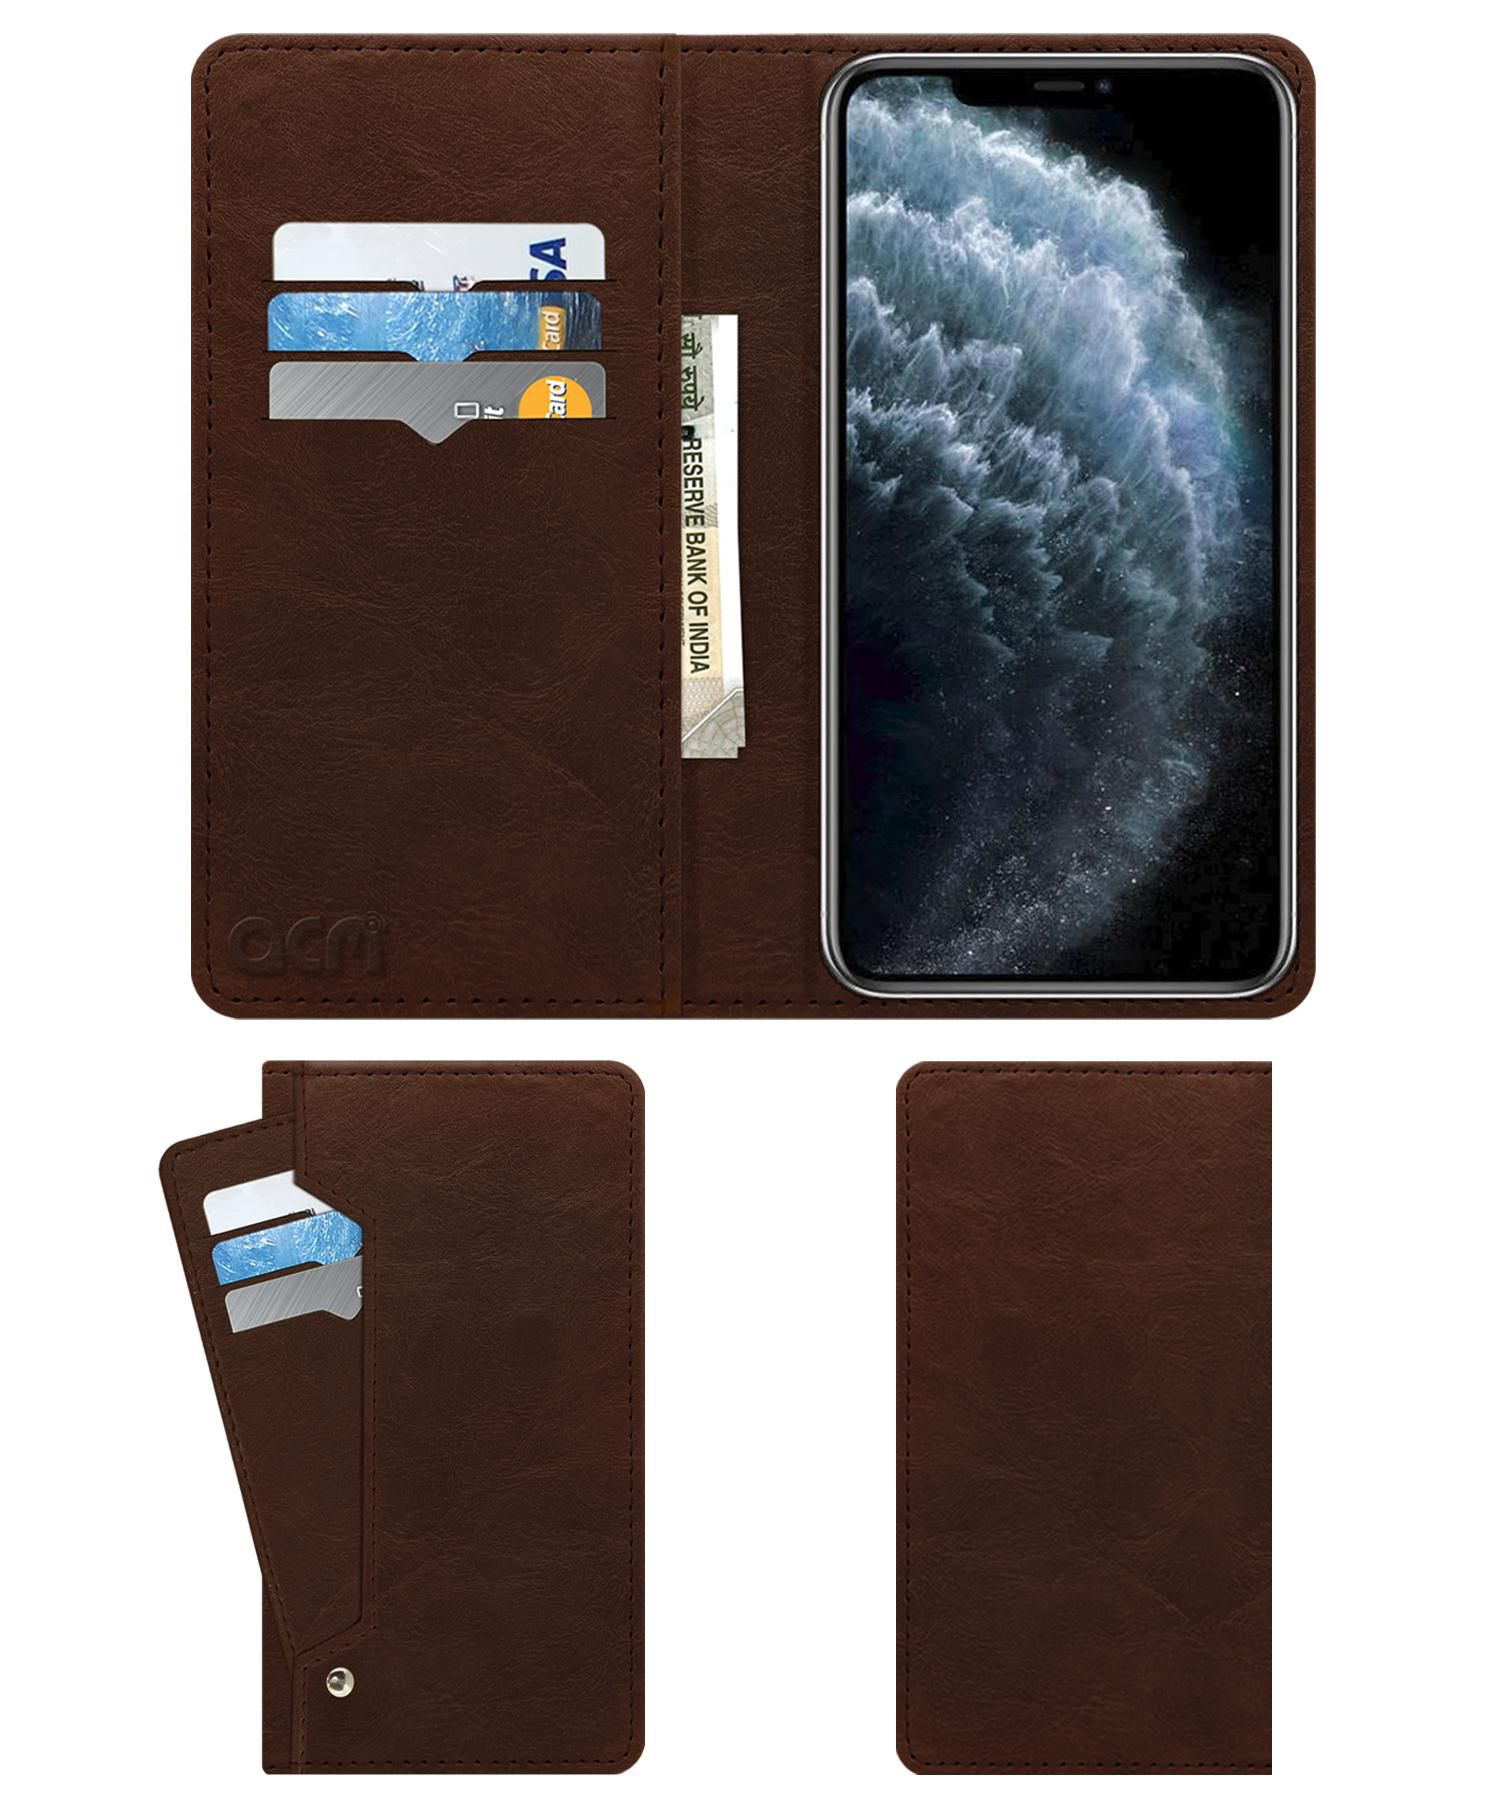 Apple Iphone 11 Pro Max Flip Cover by ACM - Brown Wallet Case,Can store 6 Card & Cash,Rich Brown